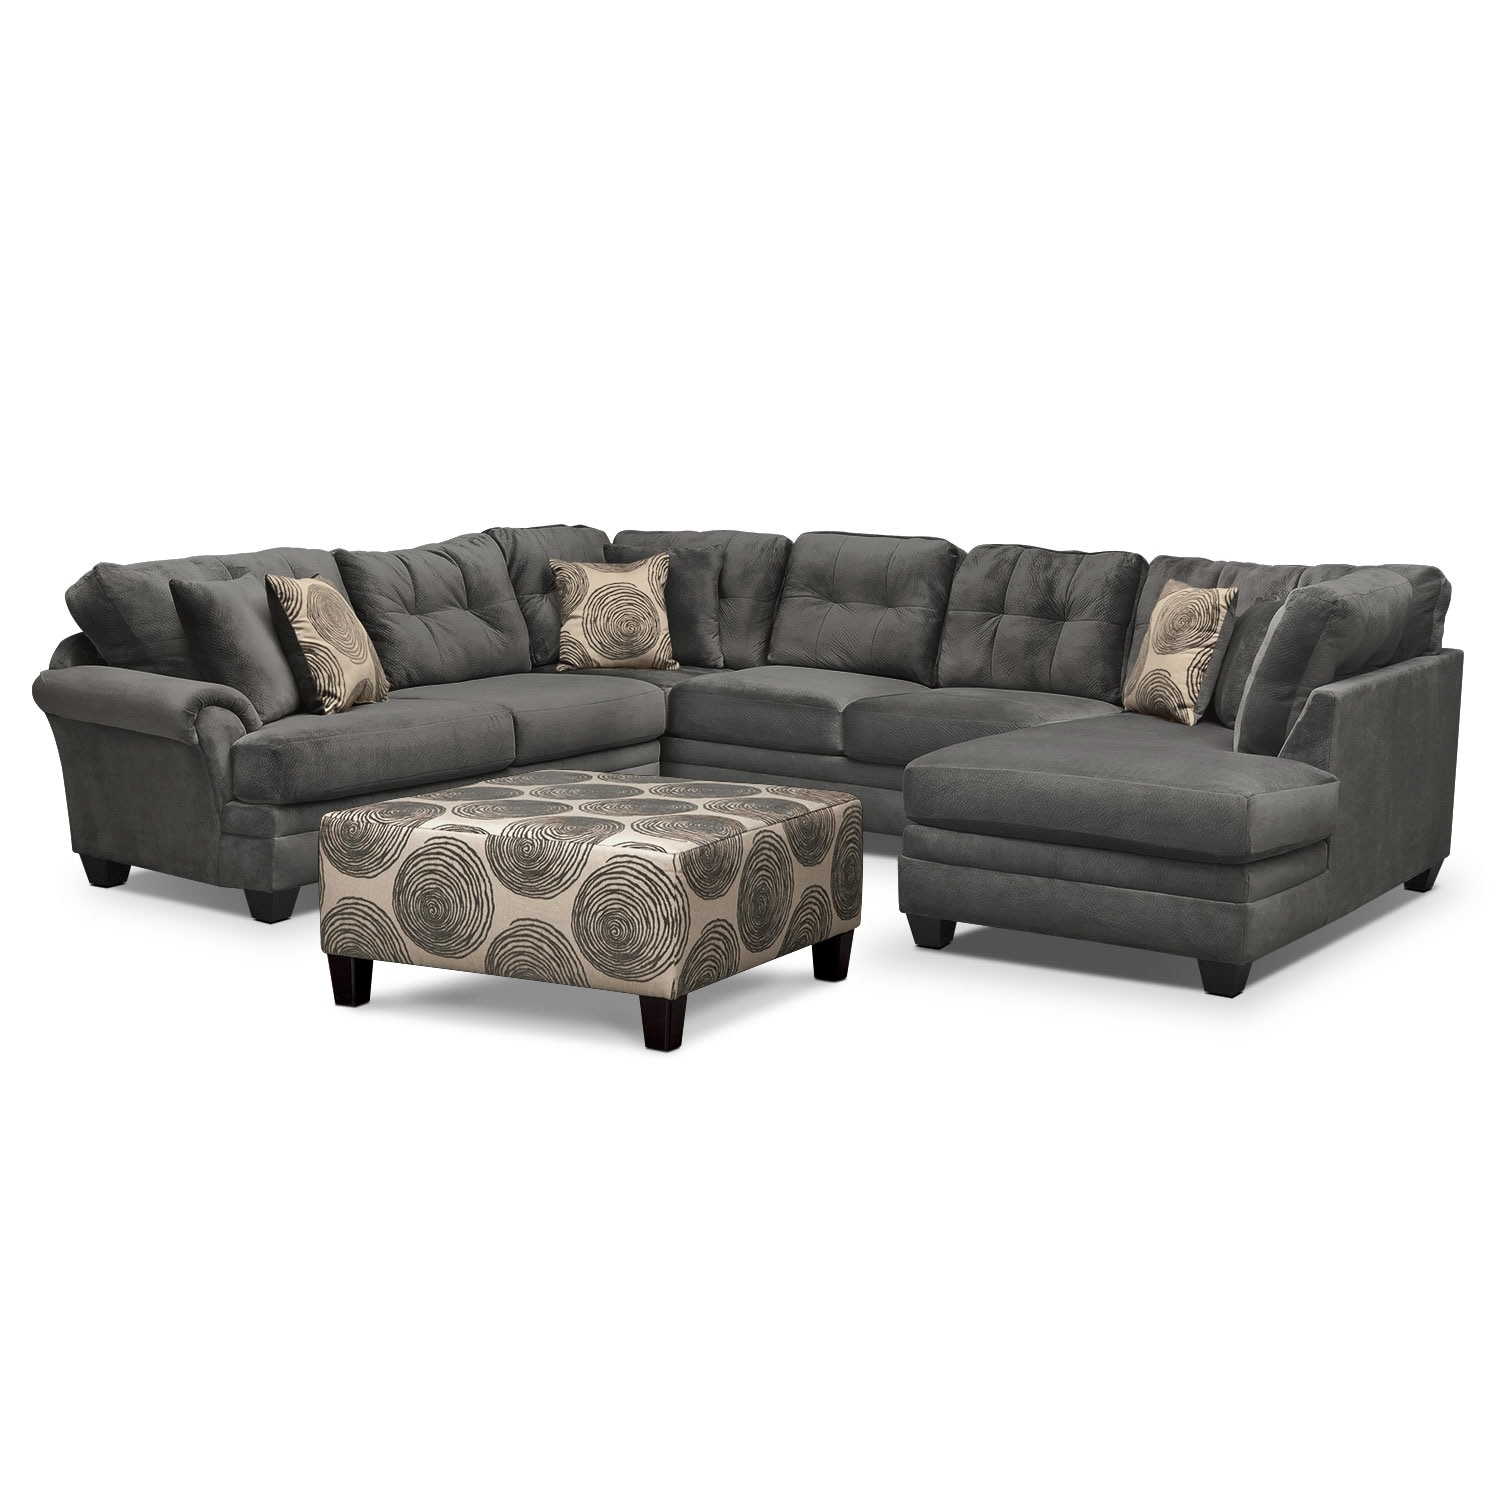 Cordelle 3 Piece Sectional And Cocktail Ottoman Set